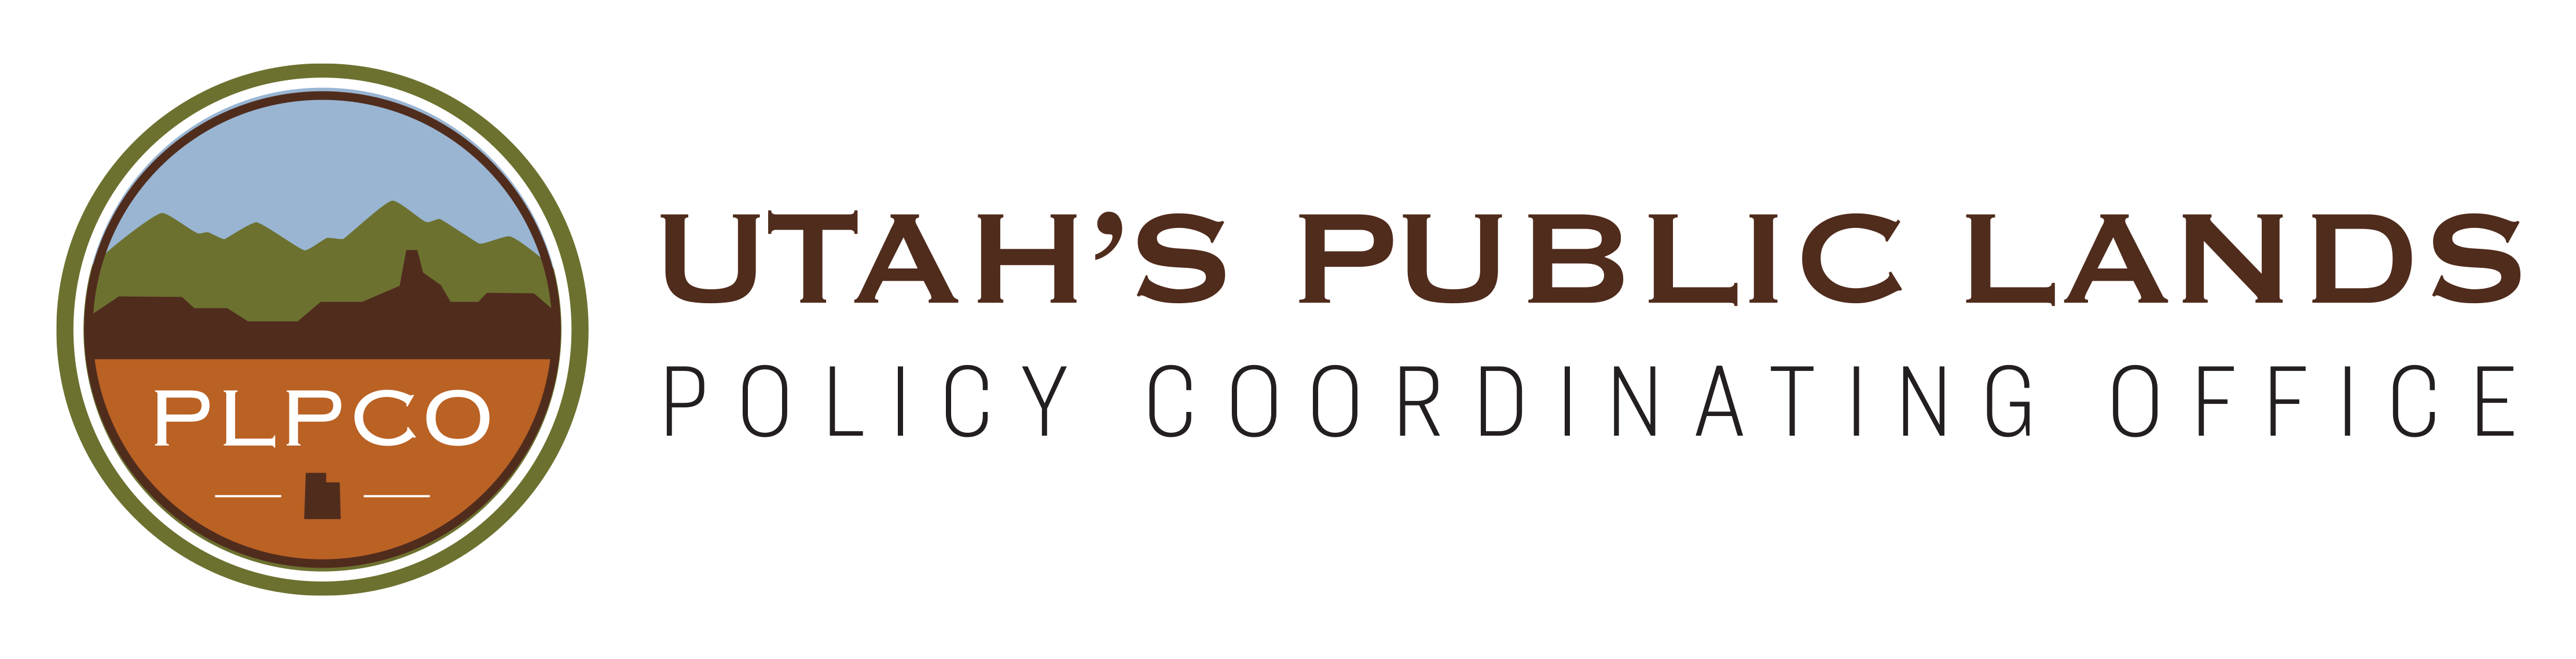 Utah's Public Lands Policy Coordinating Office